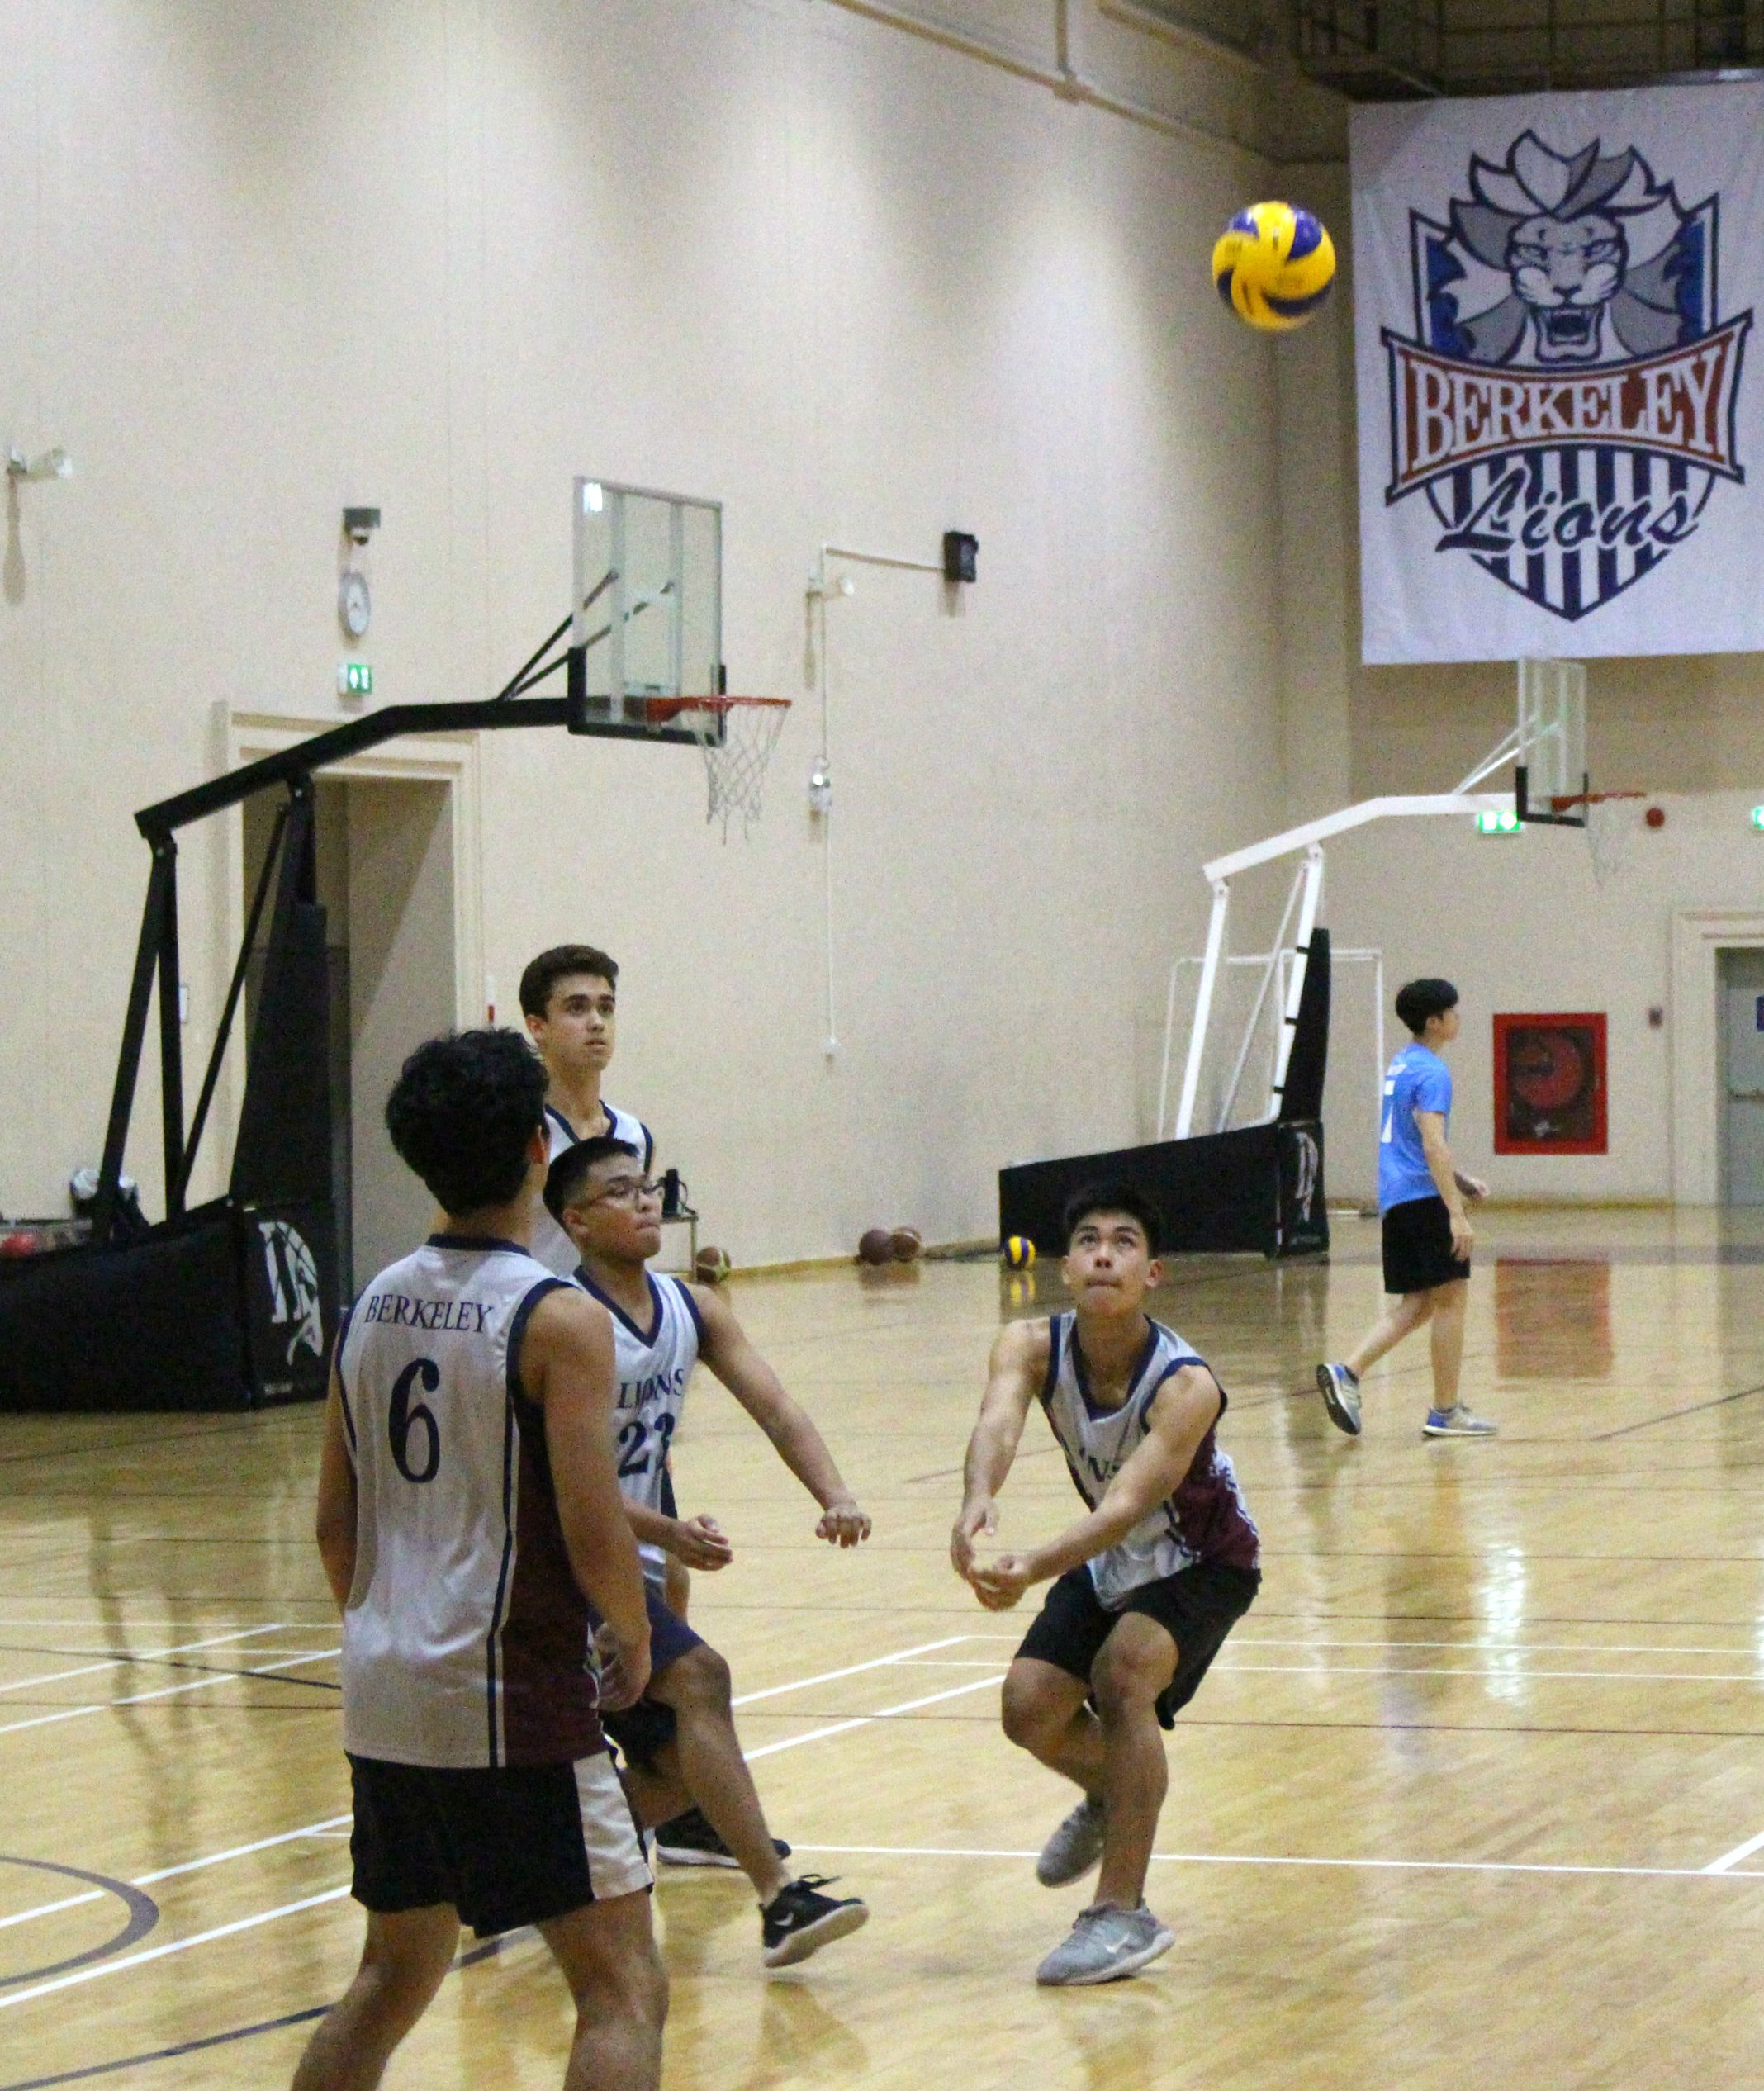 We Were Happy To Welcome Over Mahidol And Kis Yesterday For A Mini Round Robin Volleyball Tournament For Our Varsity Boys It Was A Super Way To Kick Off The Ai